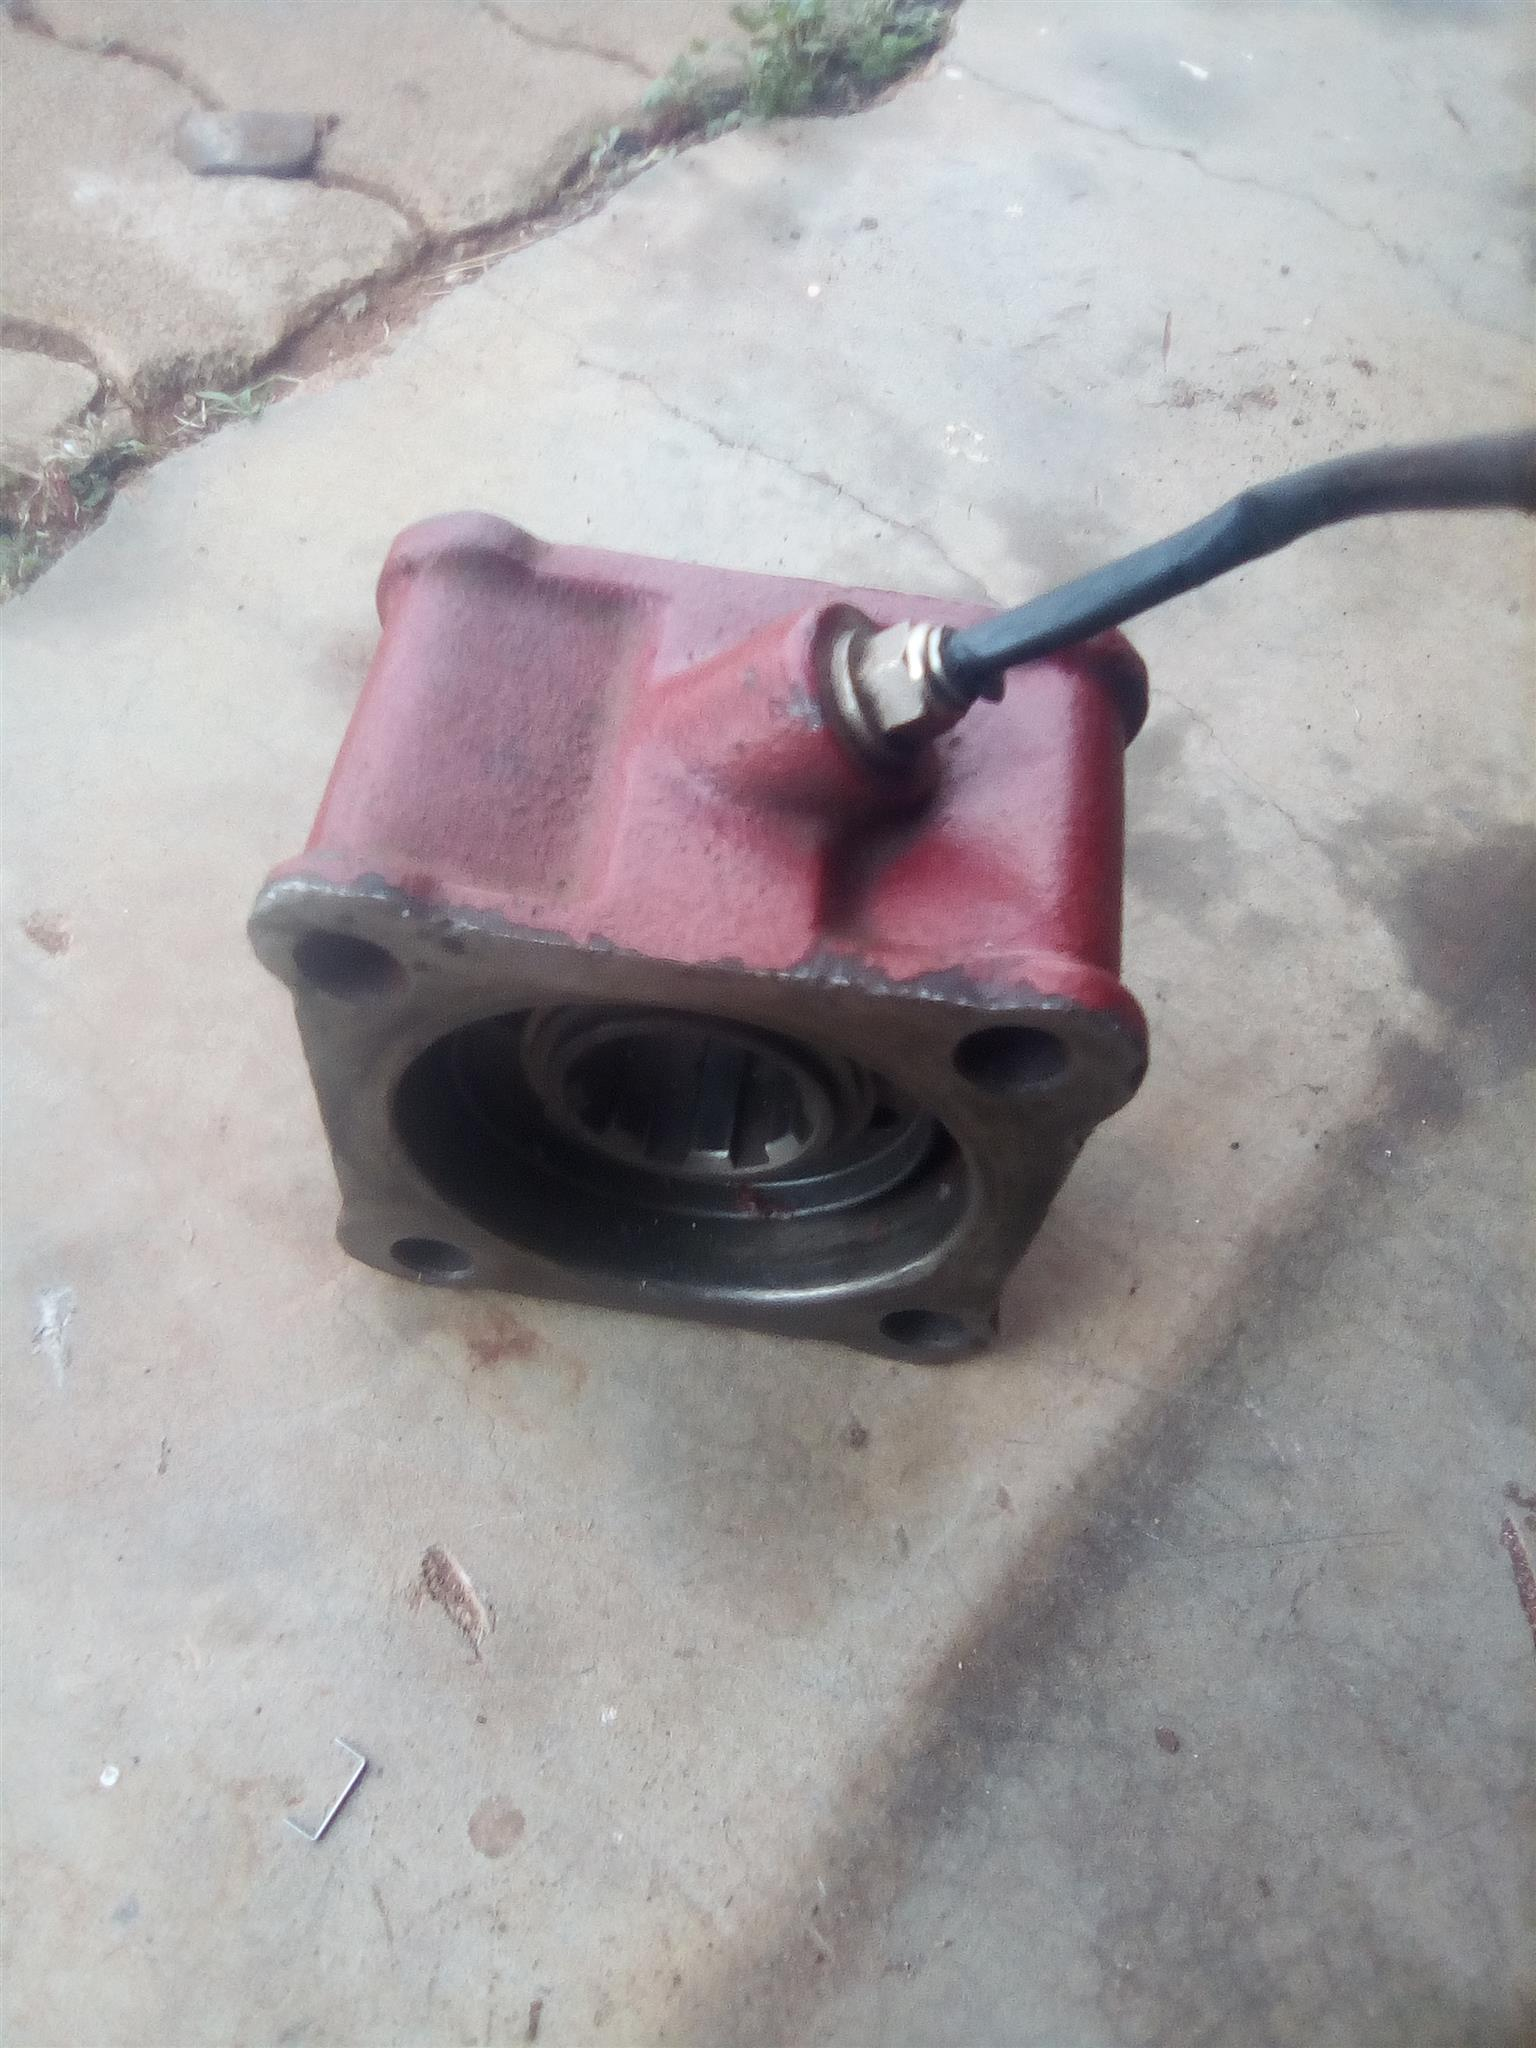 PTO for Hydraulic pump for side tipper for sale - R3000 ono